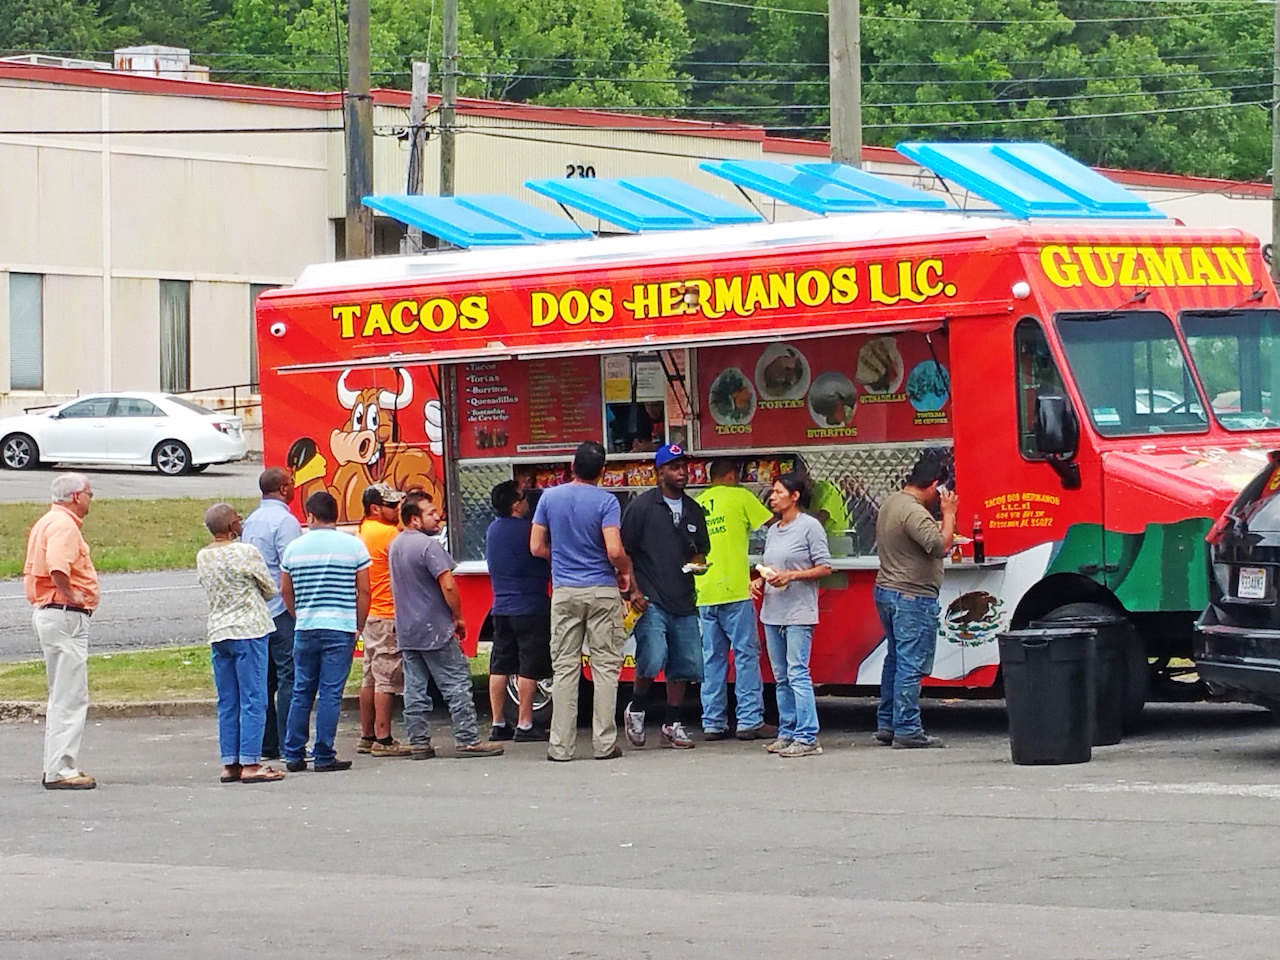 All walks of life can be found in line at the Dos Hermanos taco truck.